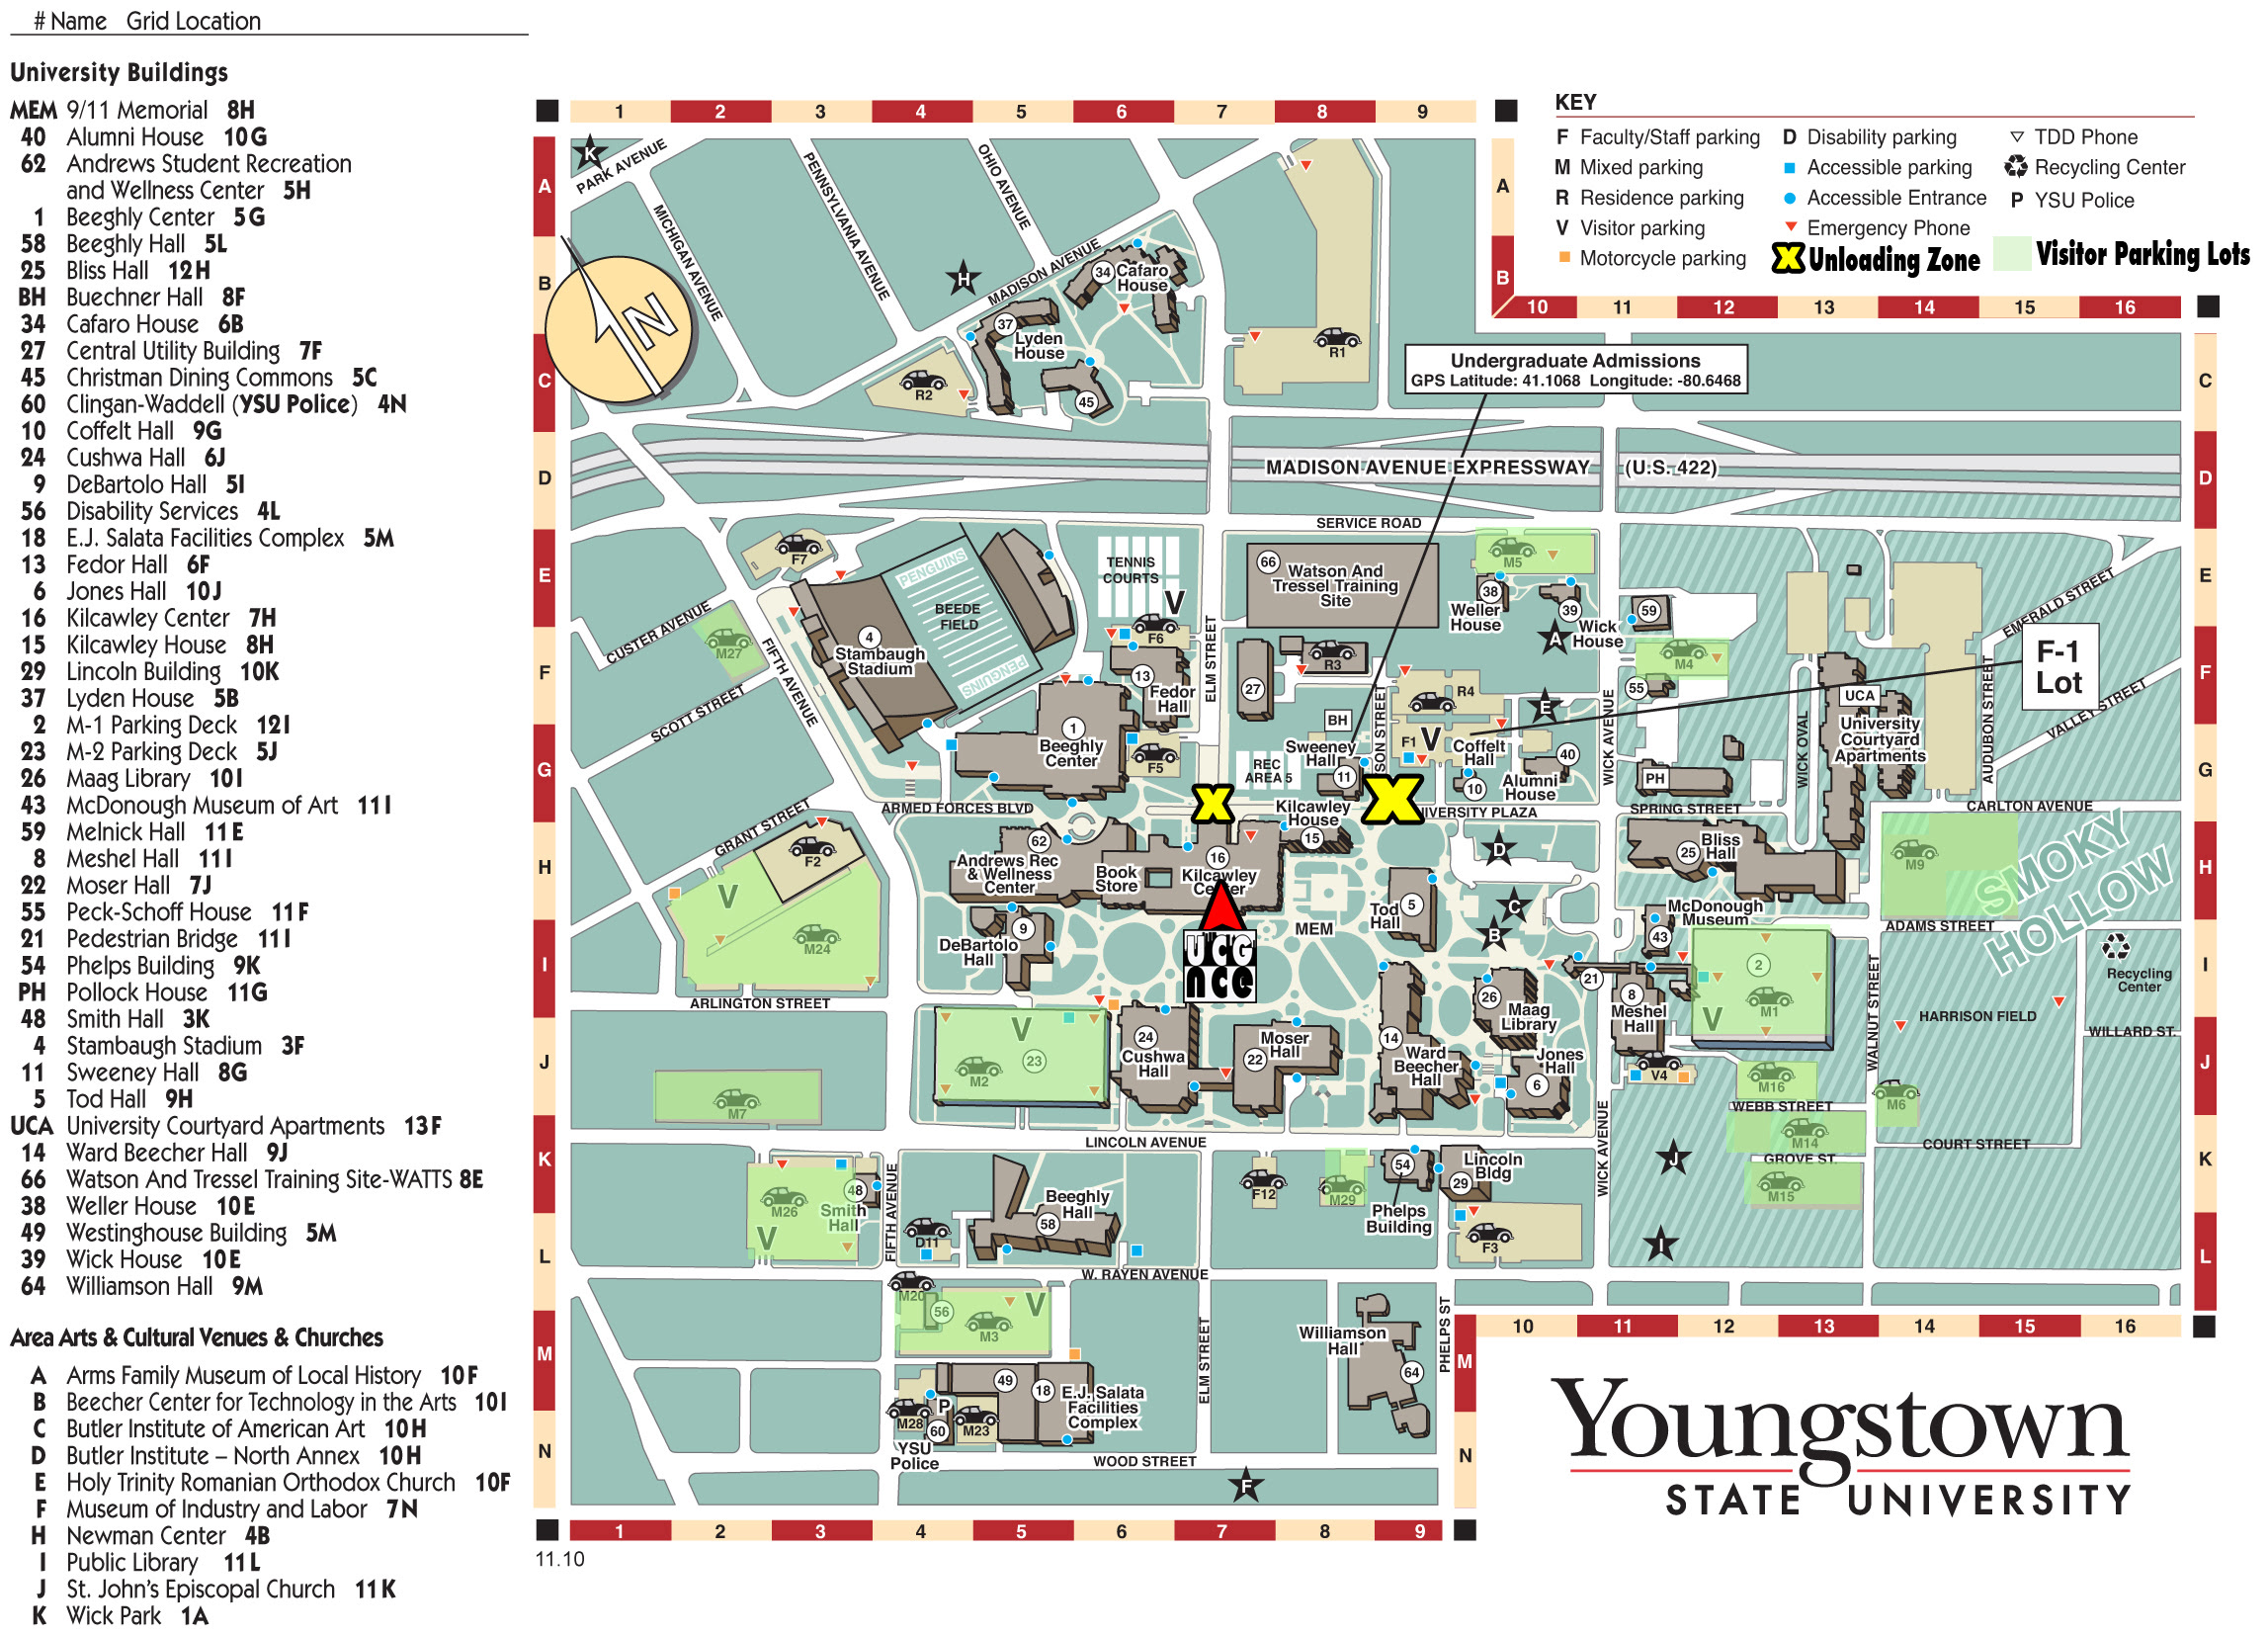 Youngstown State Map | World Map on university of pikeville map, salisbury state university map, university of texas at san antonio map, youngstown university campus map, north central state college map, central arkansas university map, youngstown ward map, mountain state university map, pensacola state university map, columbia state university map, william woods university map, black hills state university map, new hampshire university map, houston university map, university of pittsburgh at johnstown map, metropolitan state university map, university of arkansas at little rock map, new mexico university map, university of louisiana at monroe map, western iowa tech community college map,